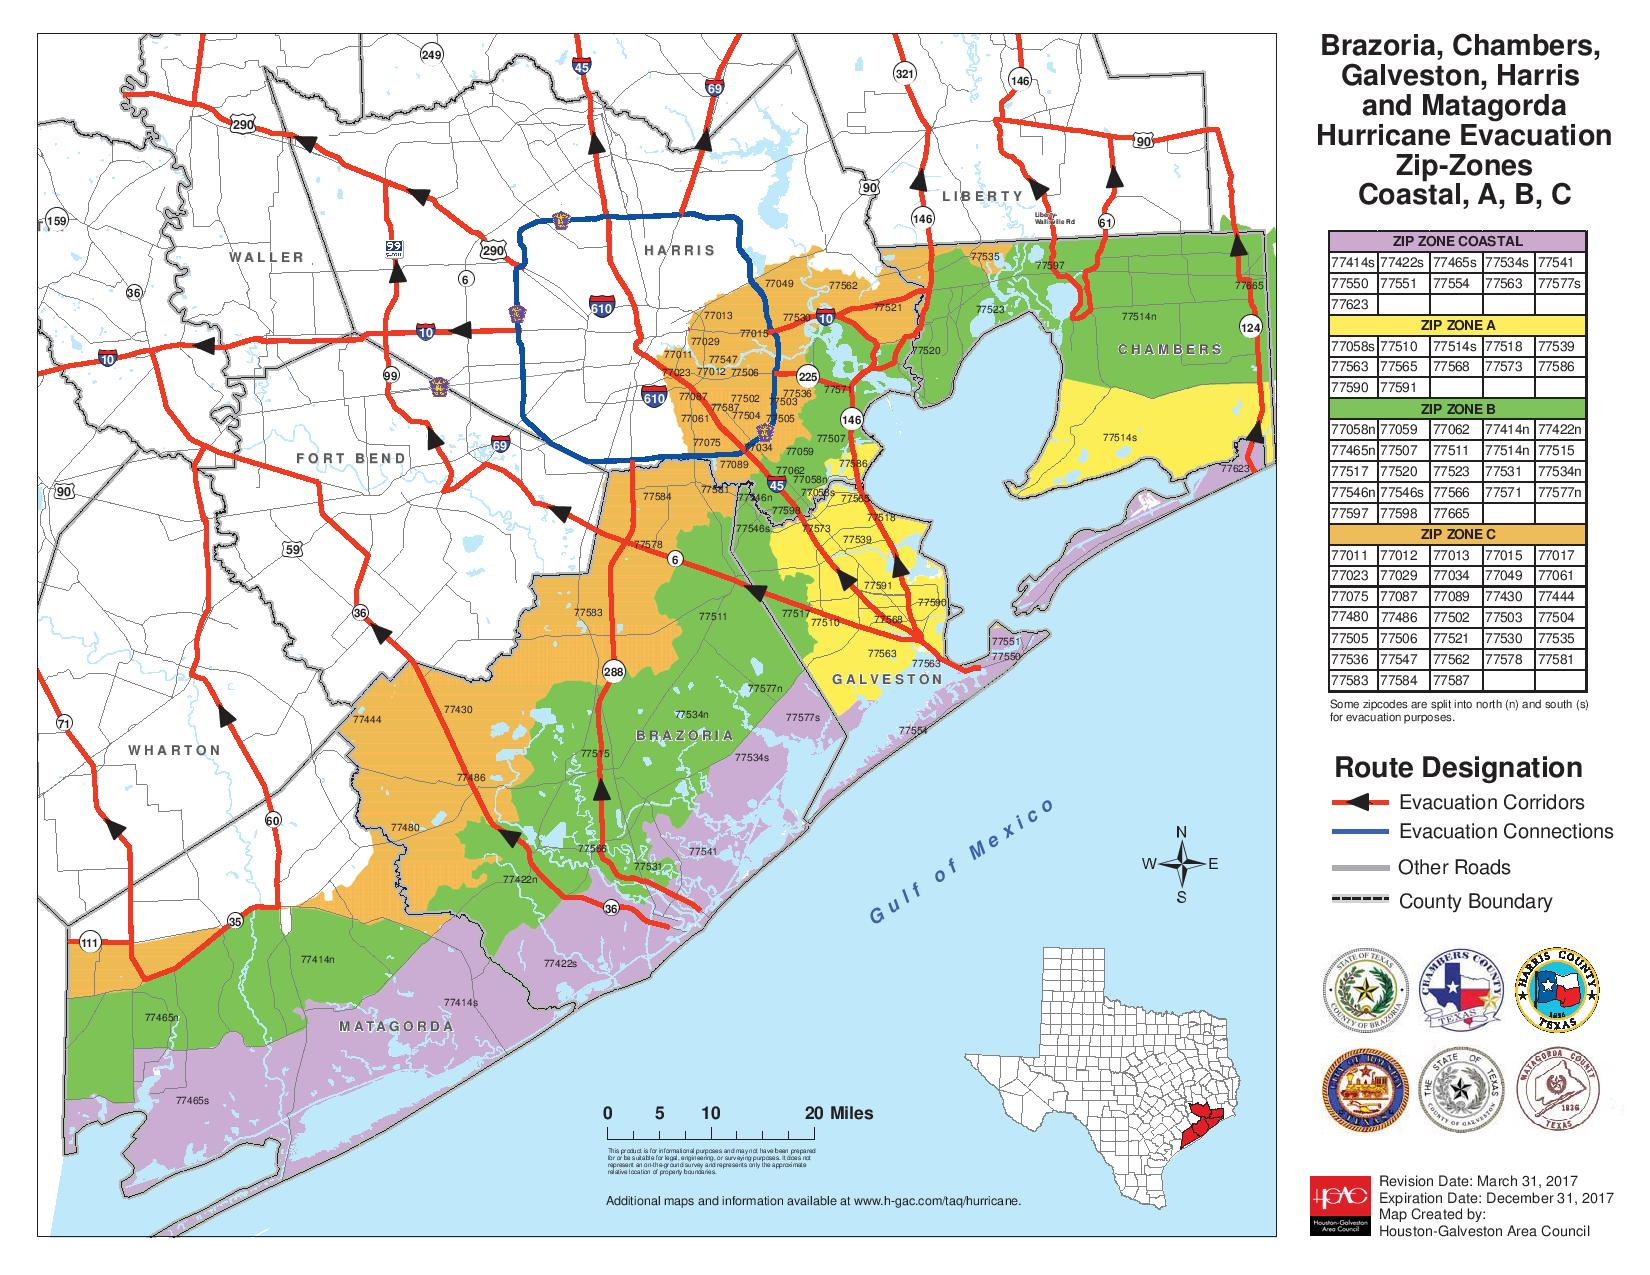 Hurricane Preparedness Links | zoria County, TX on city of brazoria texas, greater austin city map, big thicket tx map, la porte tx map, city of brazoria jobs, beach city tx map, brazoria county map, snyder tx map, wichita falls tx map, native tx map, city of holliday tx, city of plainview, city of holiday lakes texas,